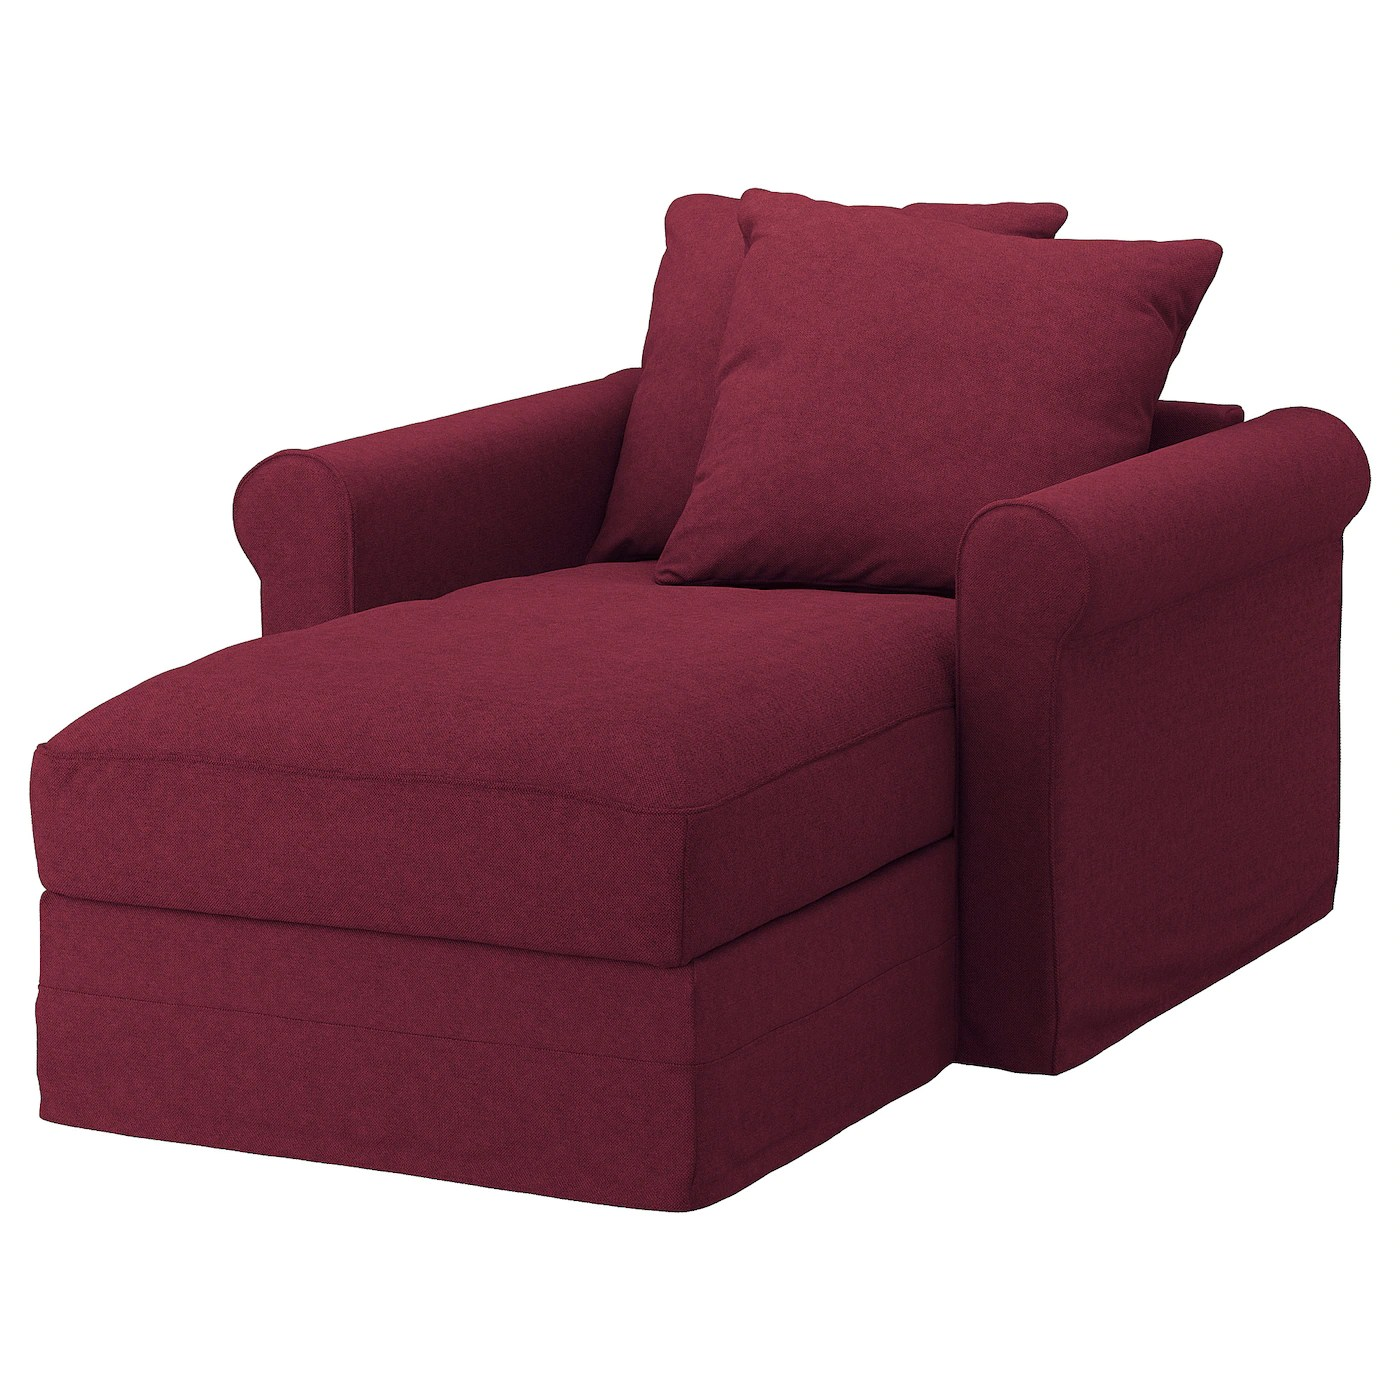 Sofa And Armchair Covers Sofa Covers Ikea